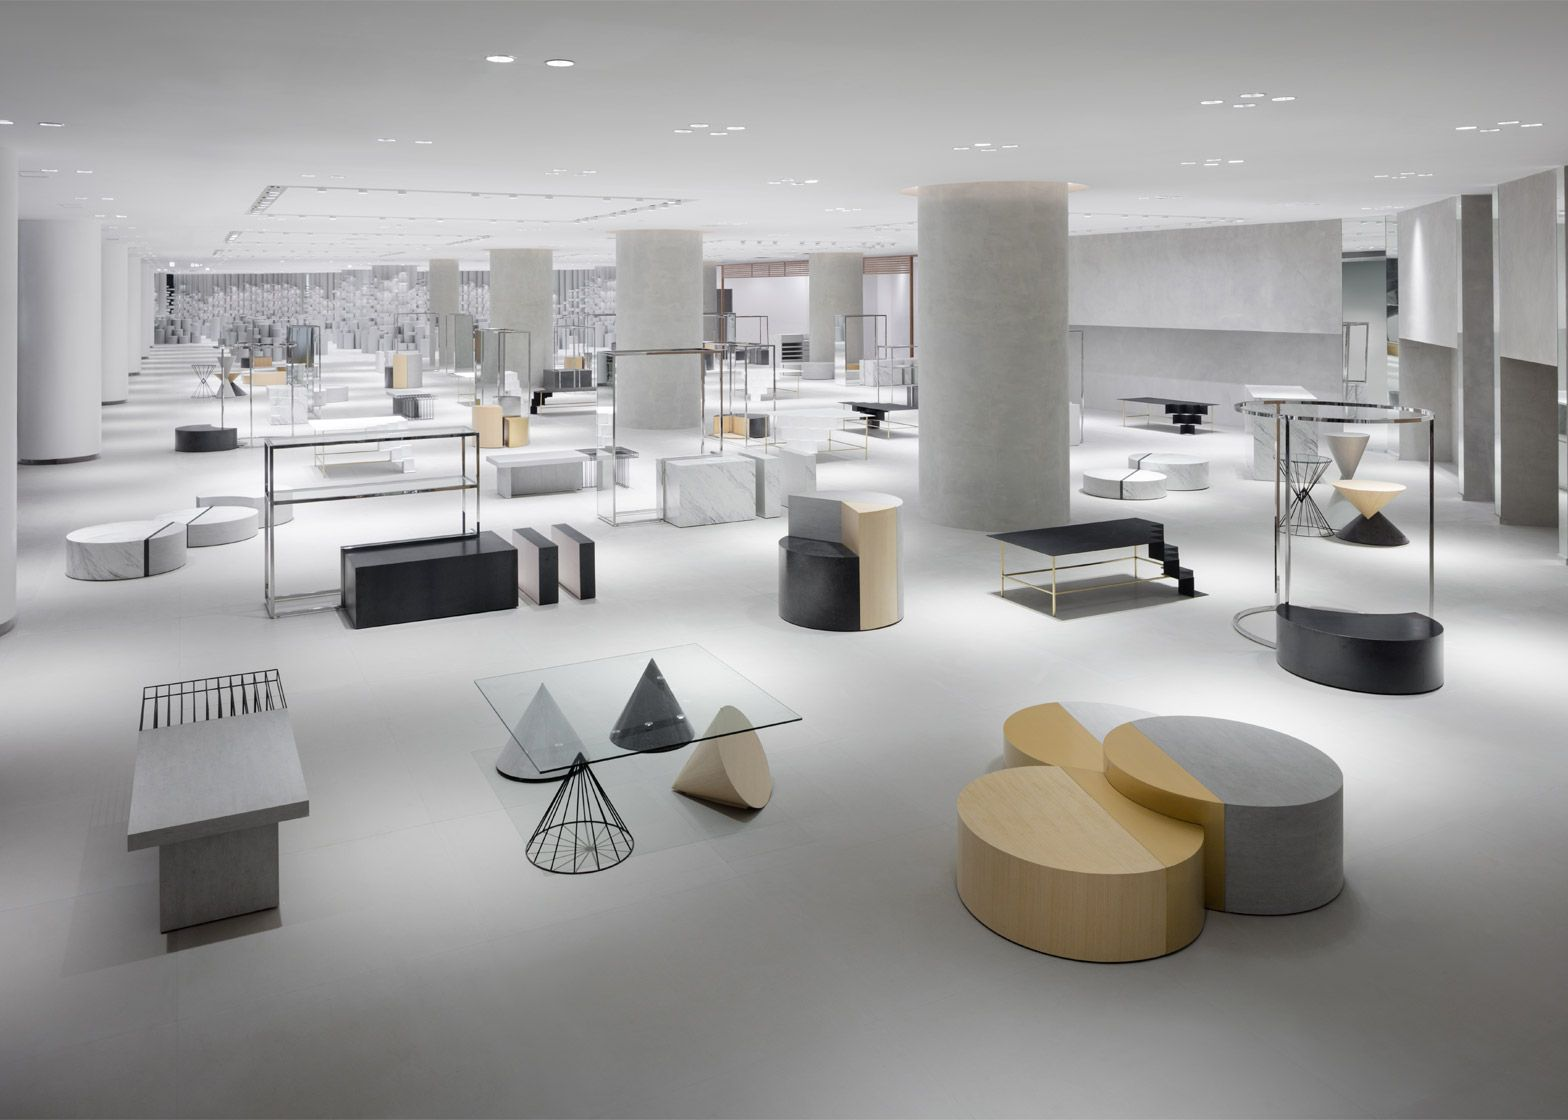 Nendo has transformed shopping space in Bangkok into Lifestyle Labs 64